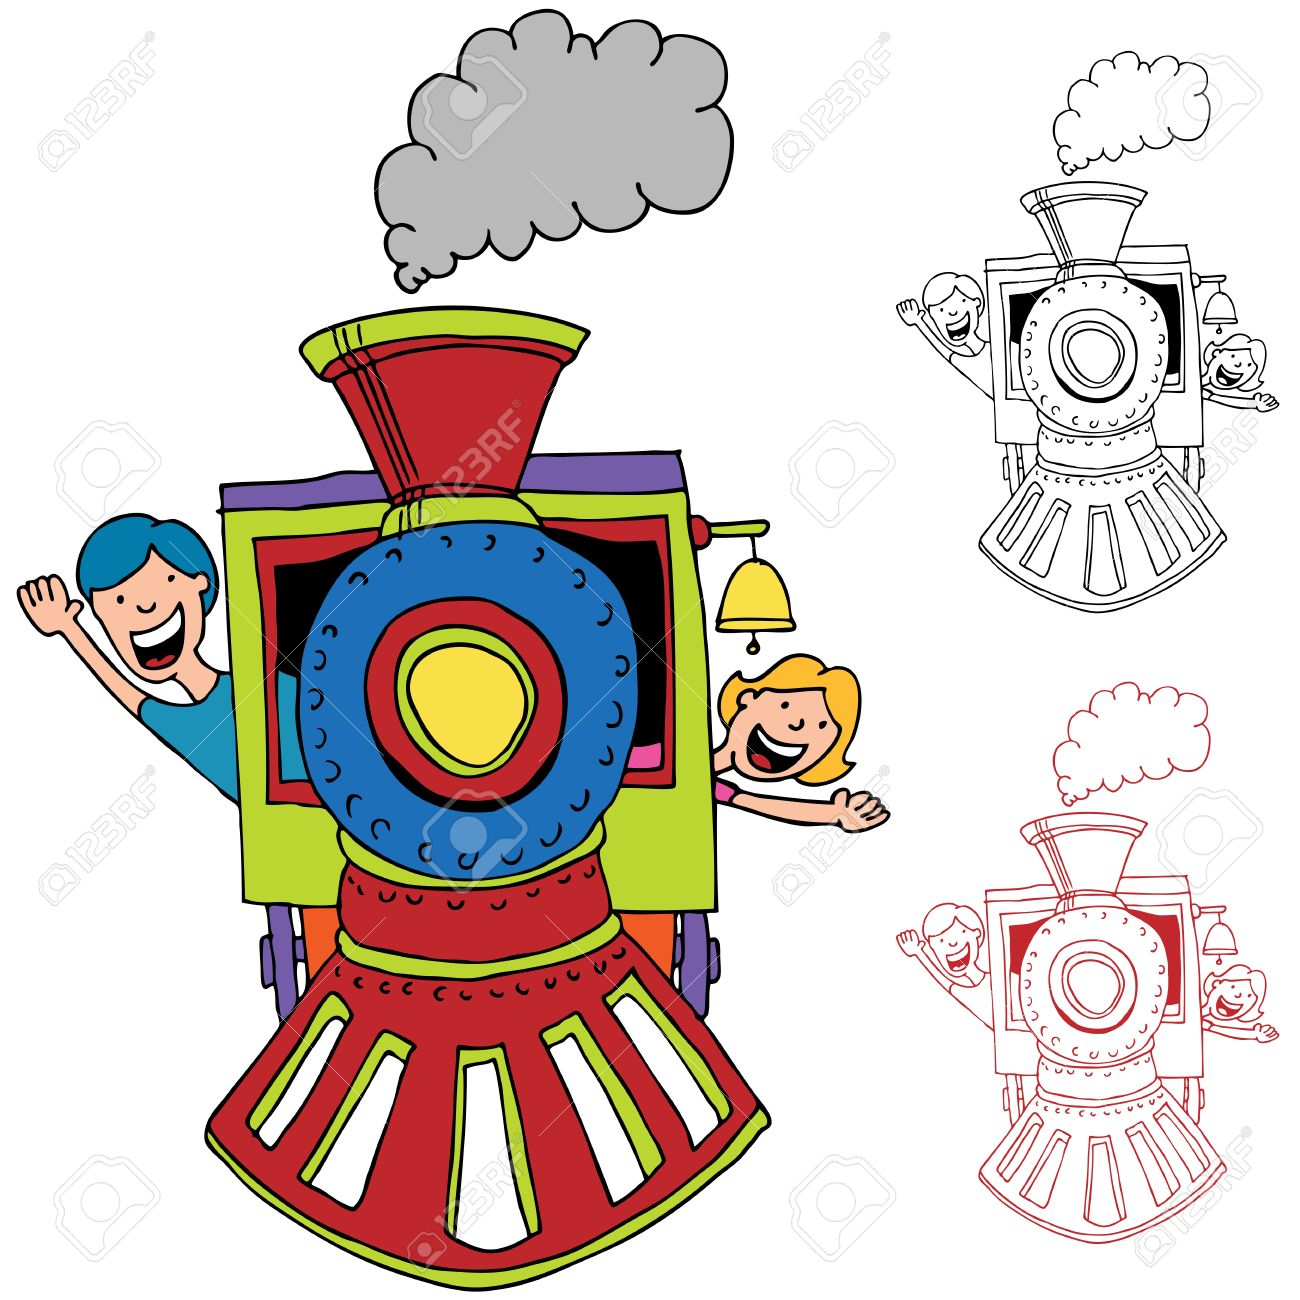 An Image Of Children Riding On A Train. Royalty Free Cliparts.